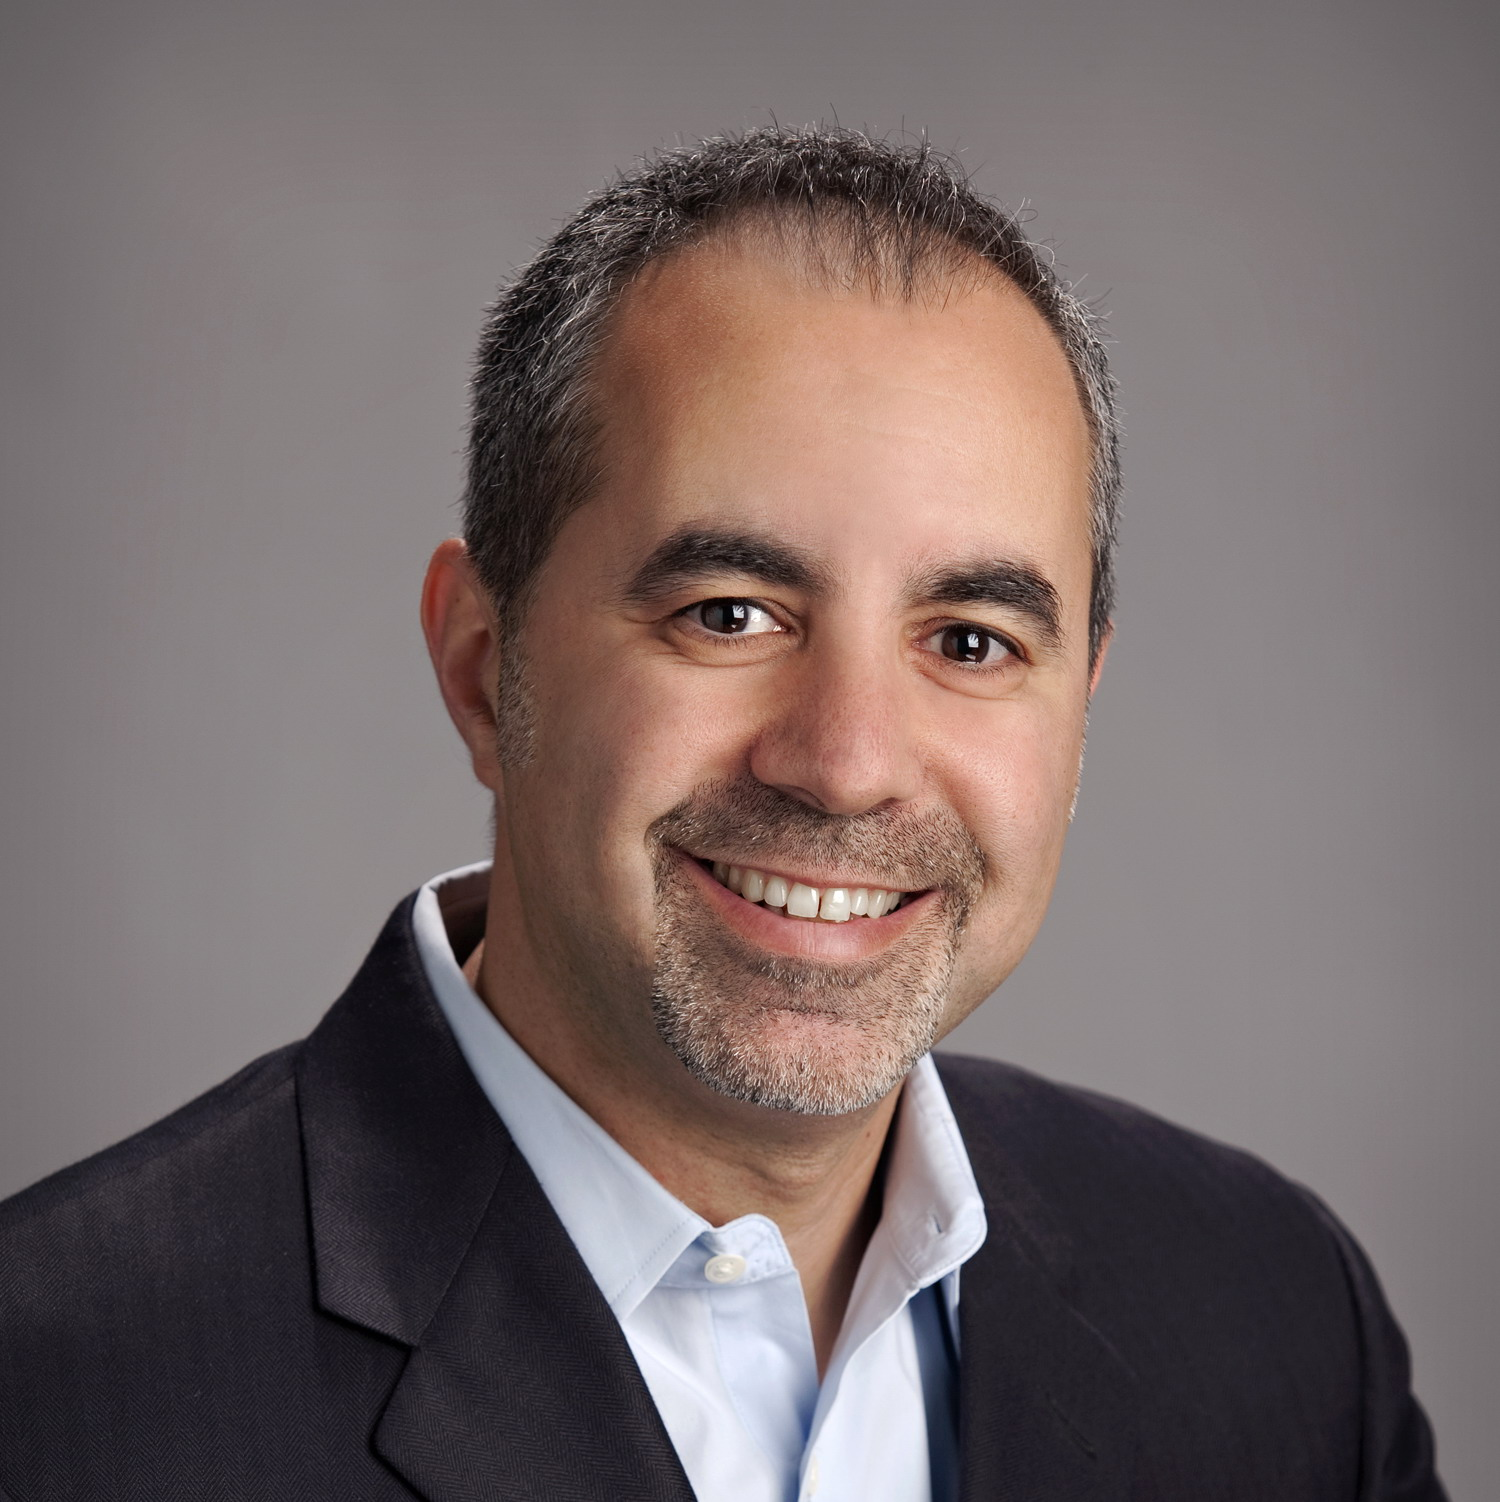 Michael Daoud Ceo Of Visus Founders Space